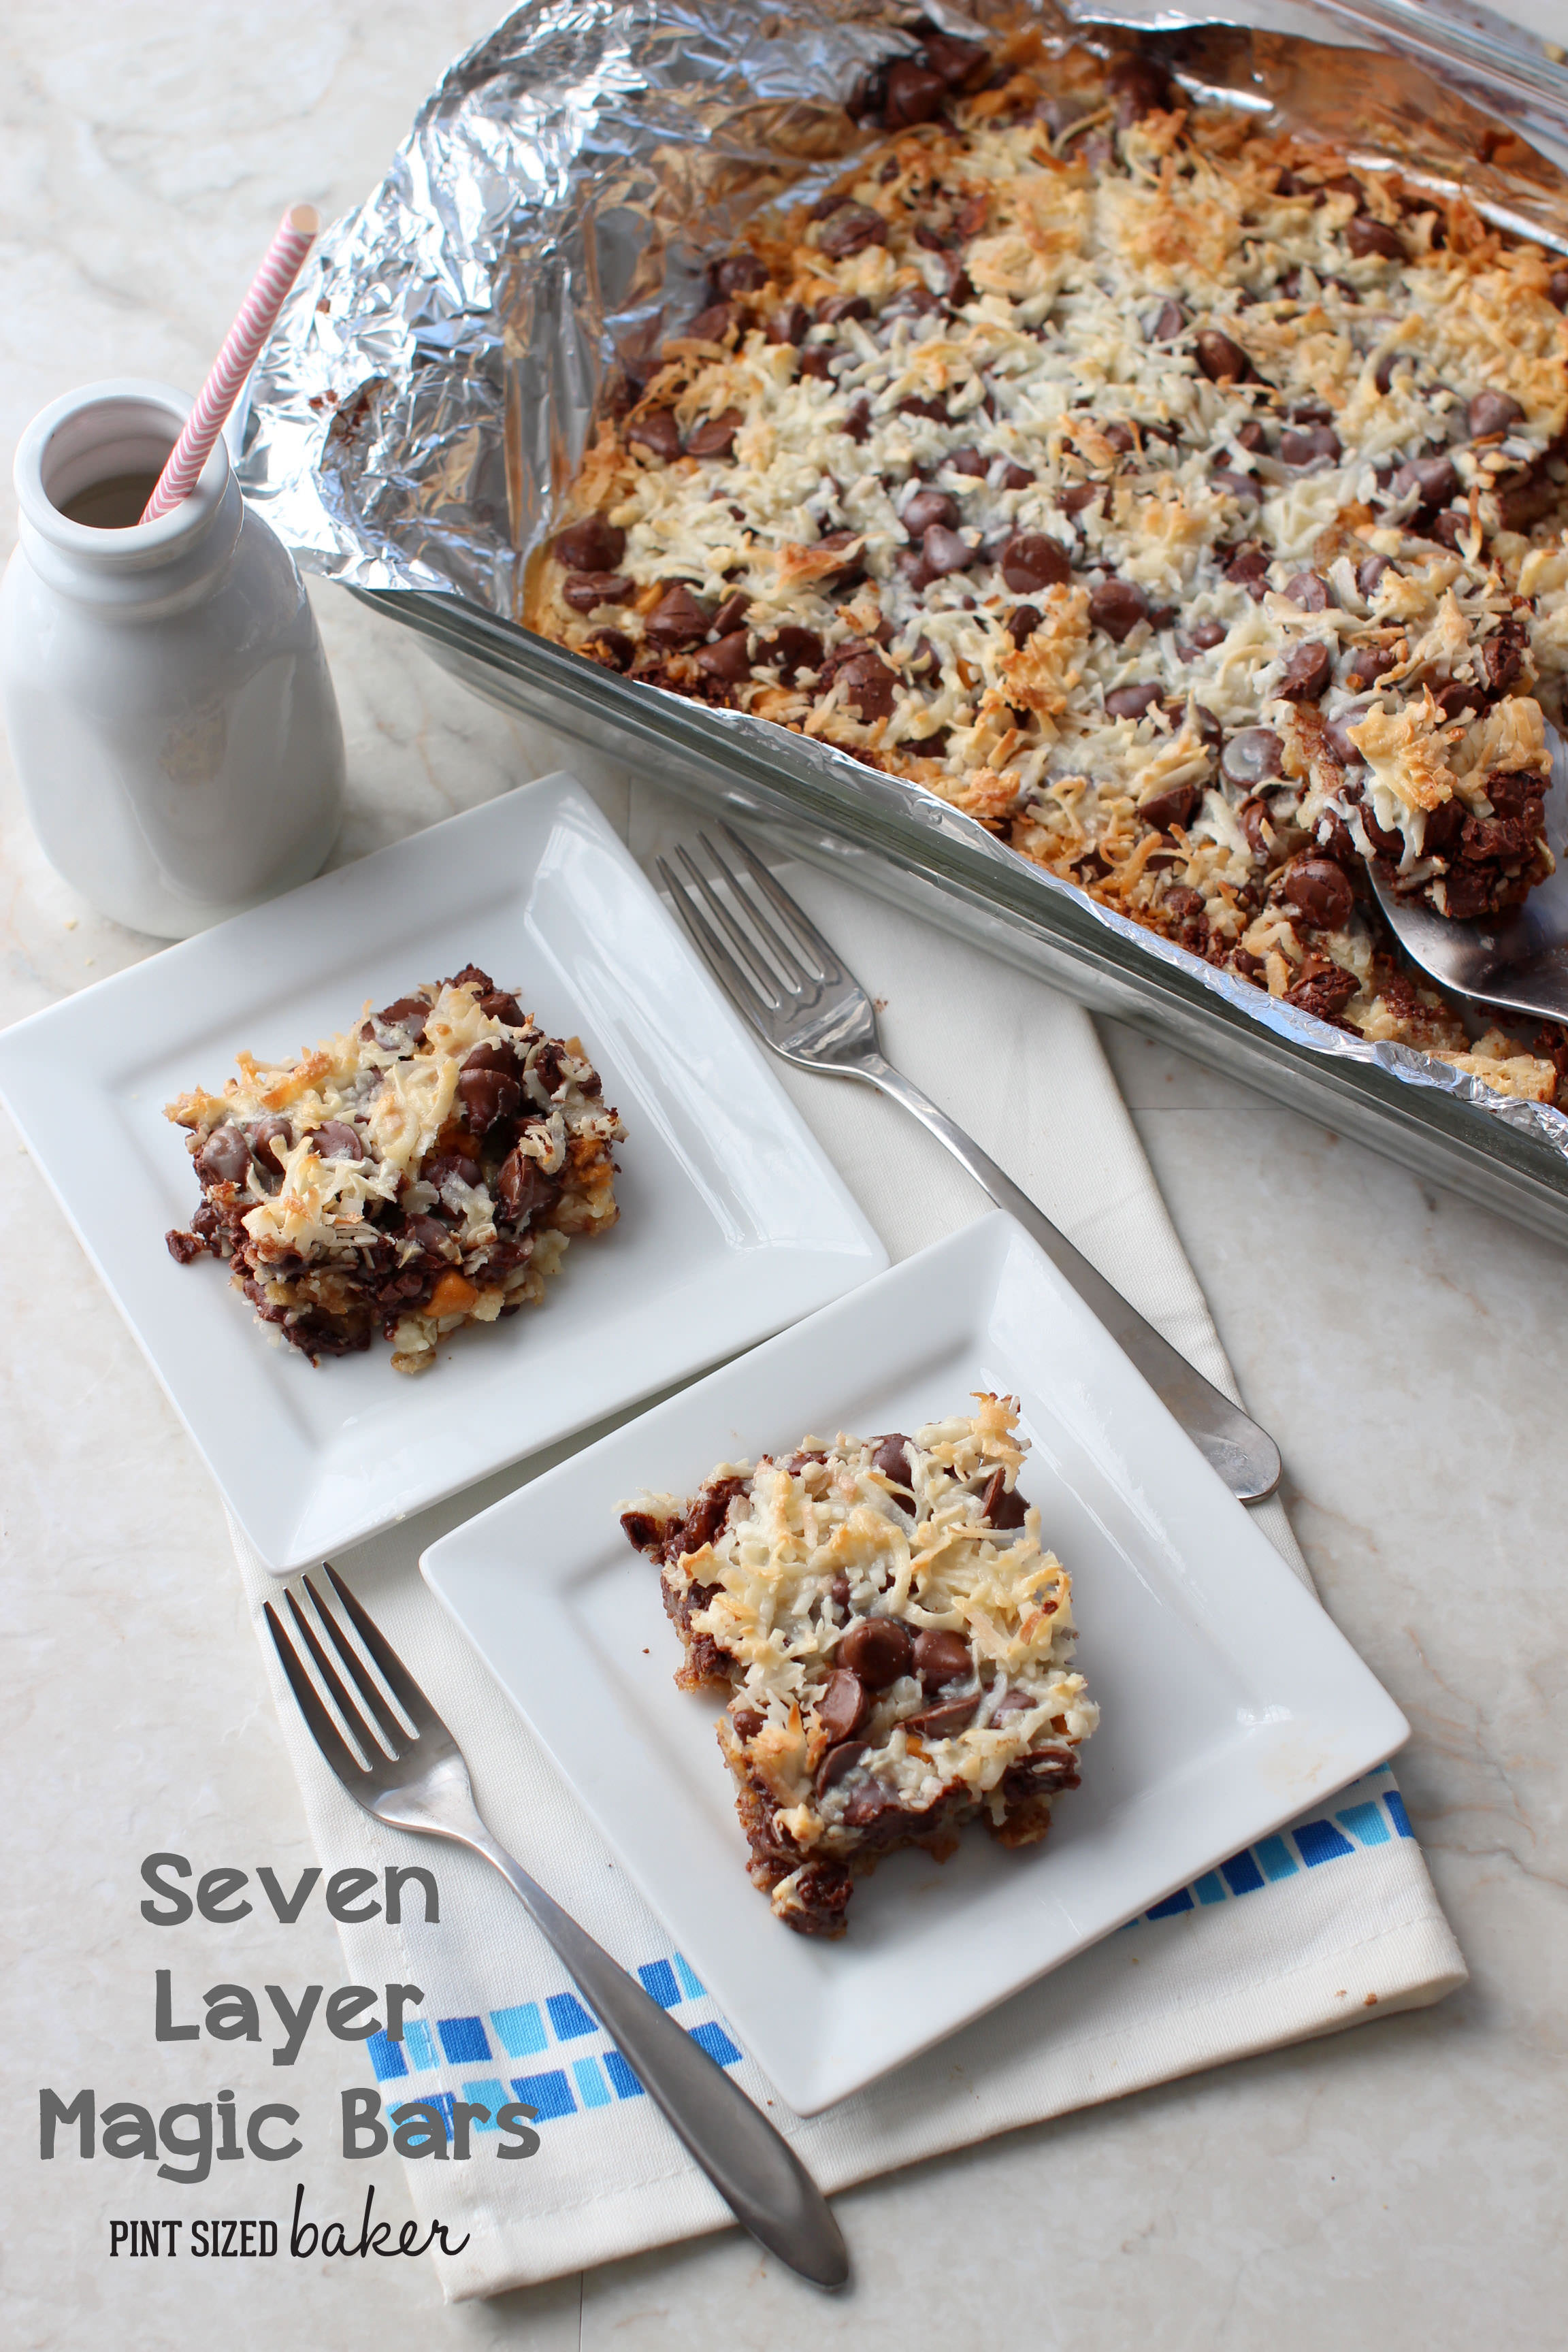 Image linked to my Seven Layer Magic Bars Recipe